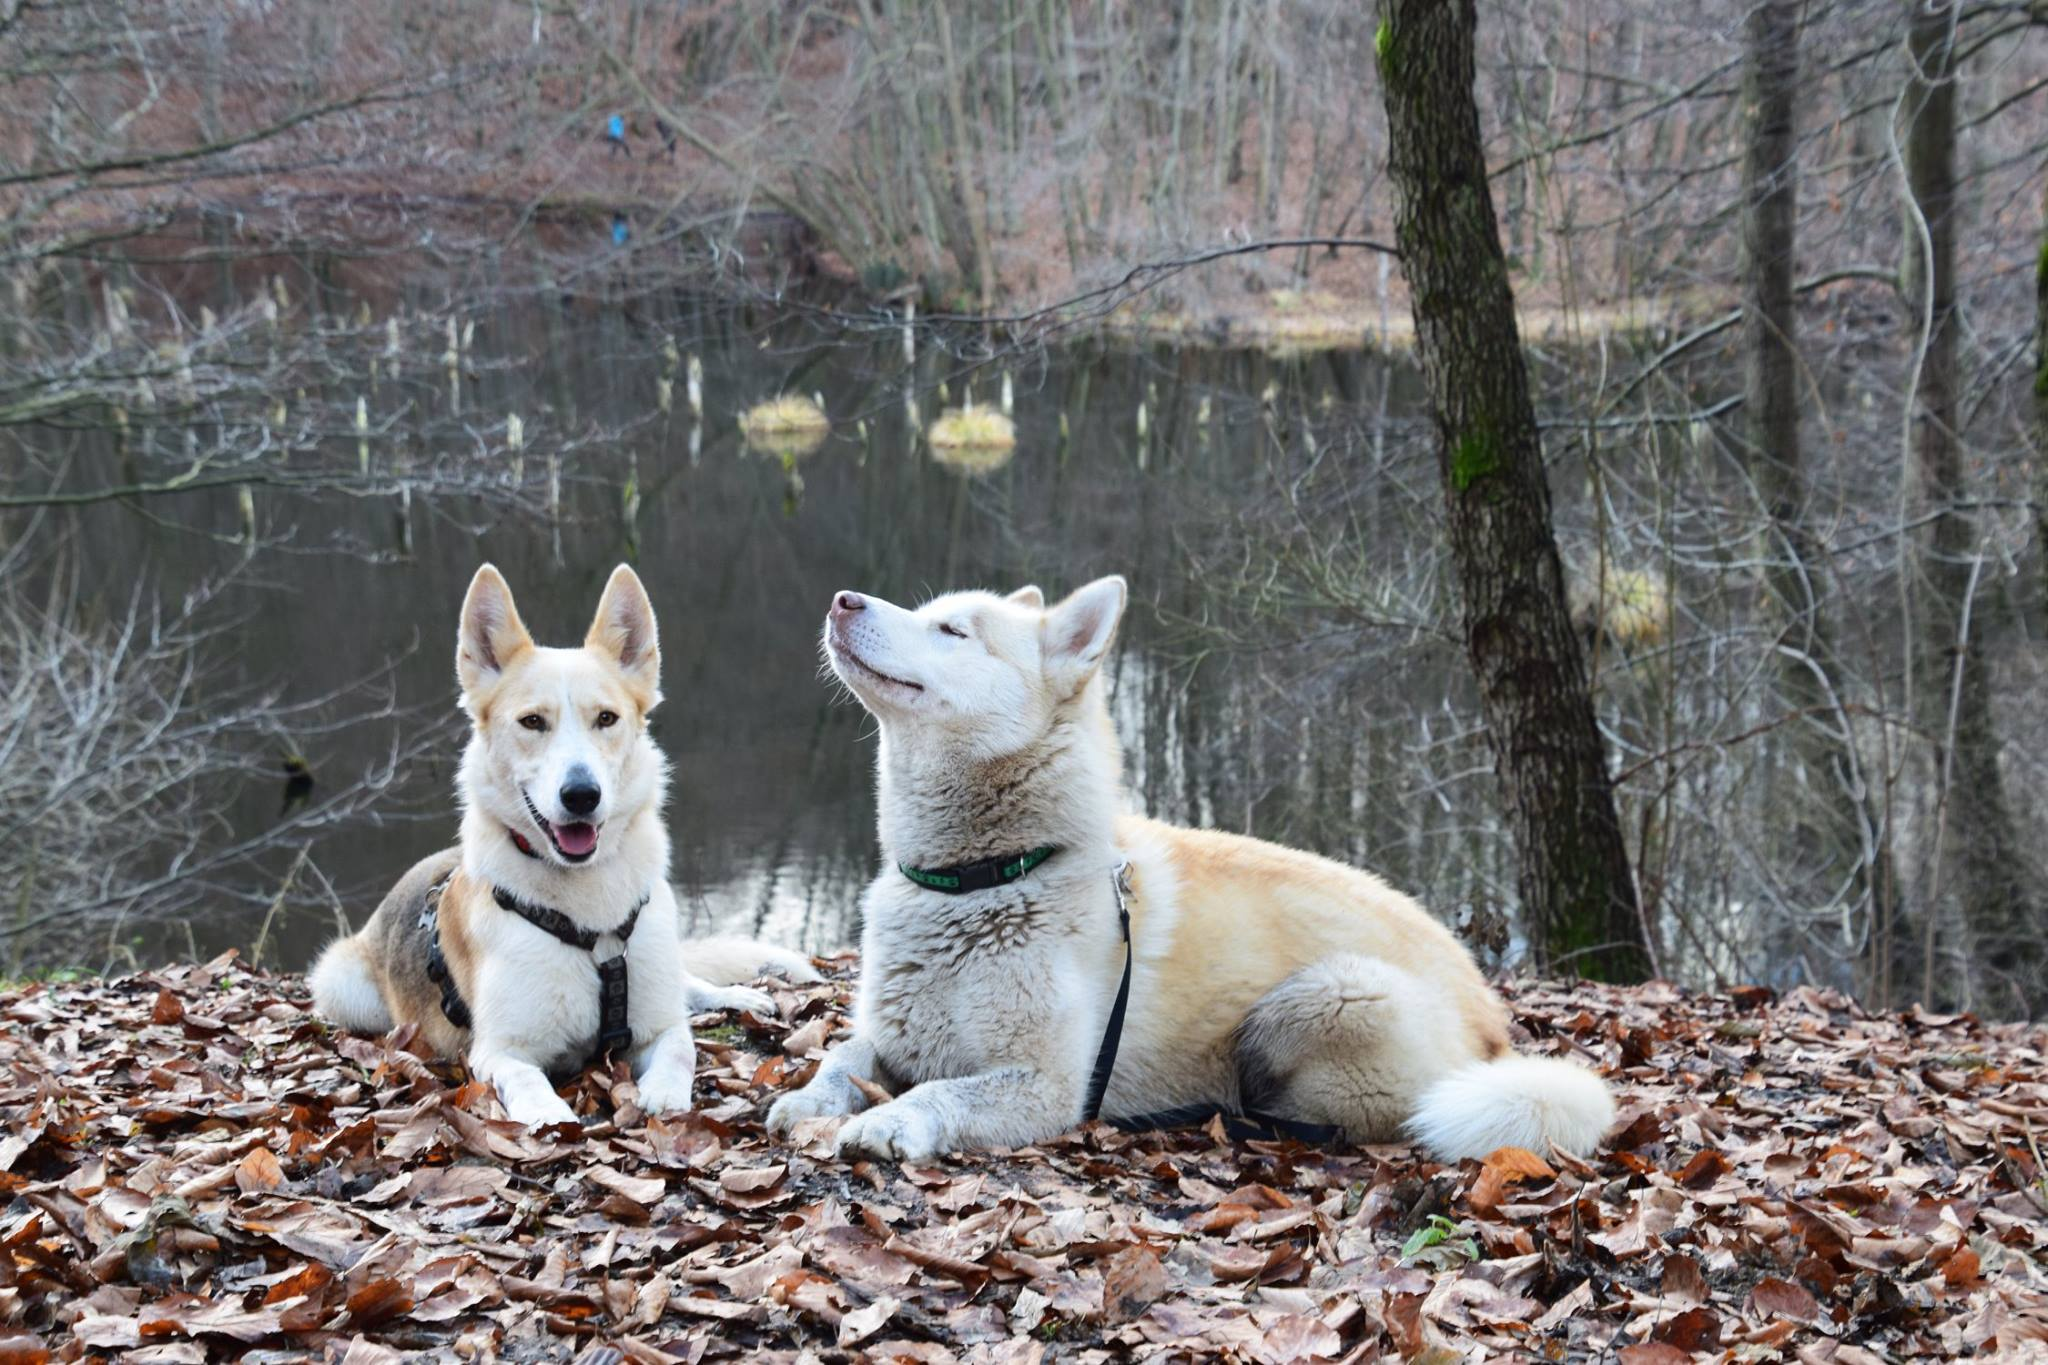 Dogs enjoy going on hikes – millions of smells await to be discovered by their noses